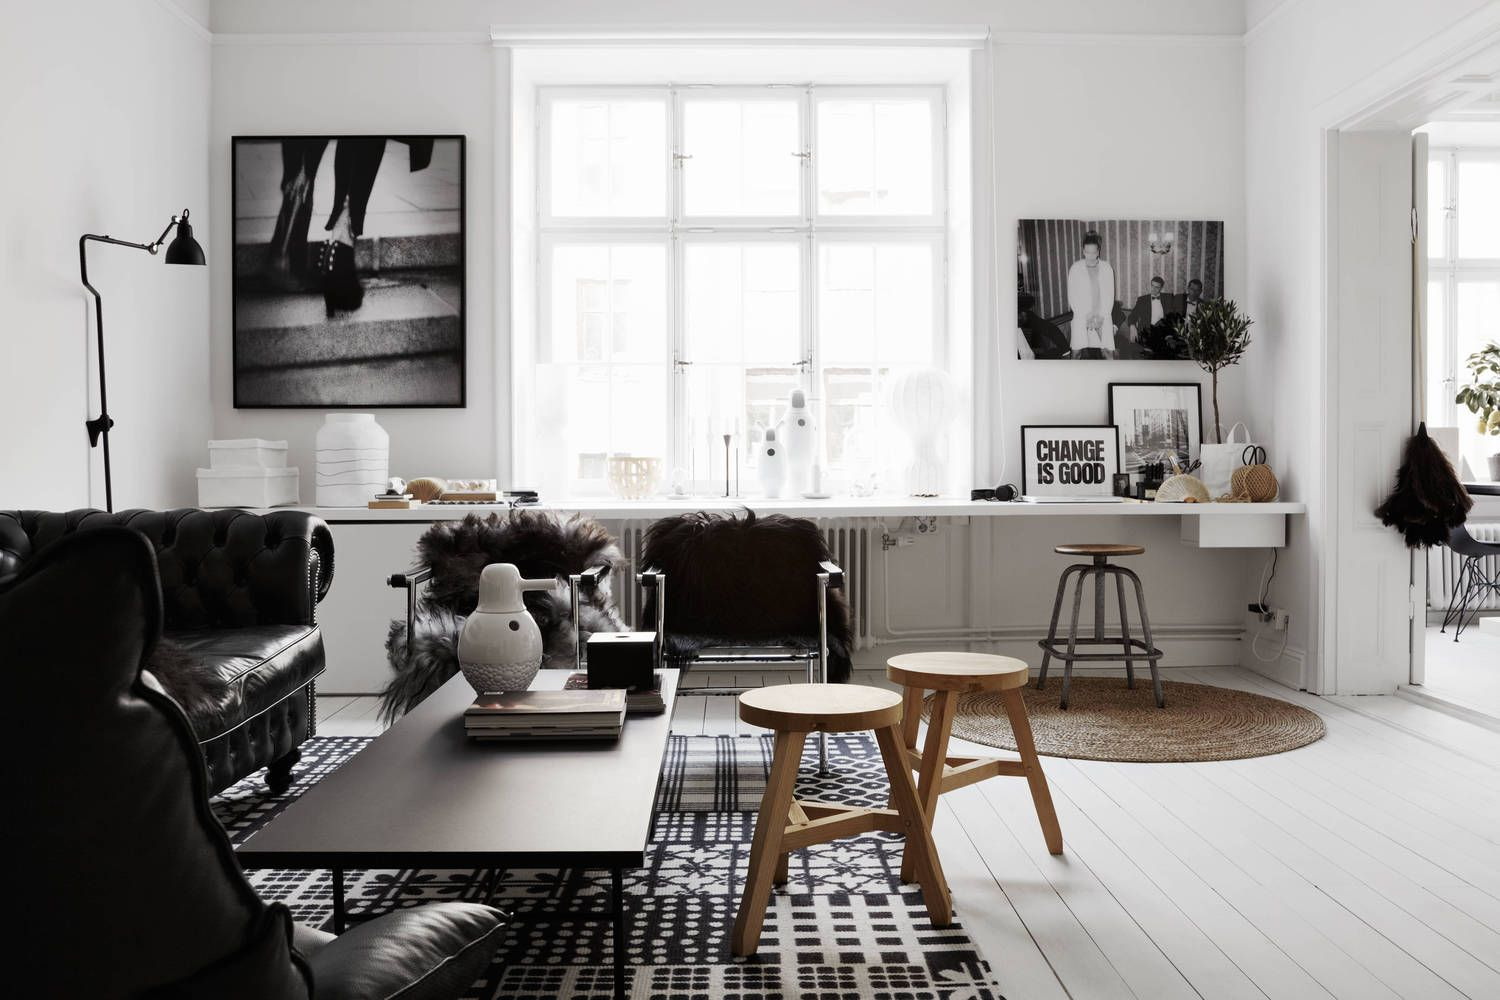 Interiors - Kristofer Johnsson - CameraLINK